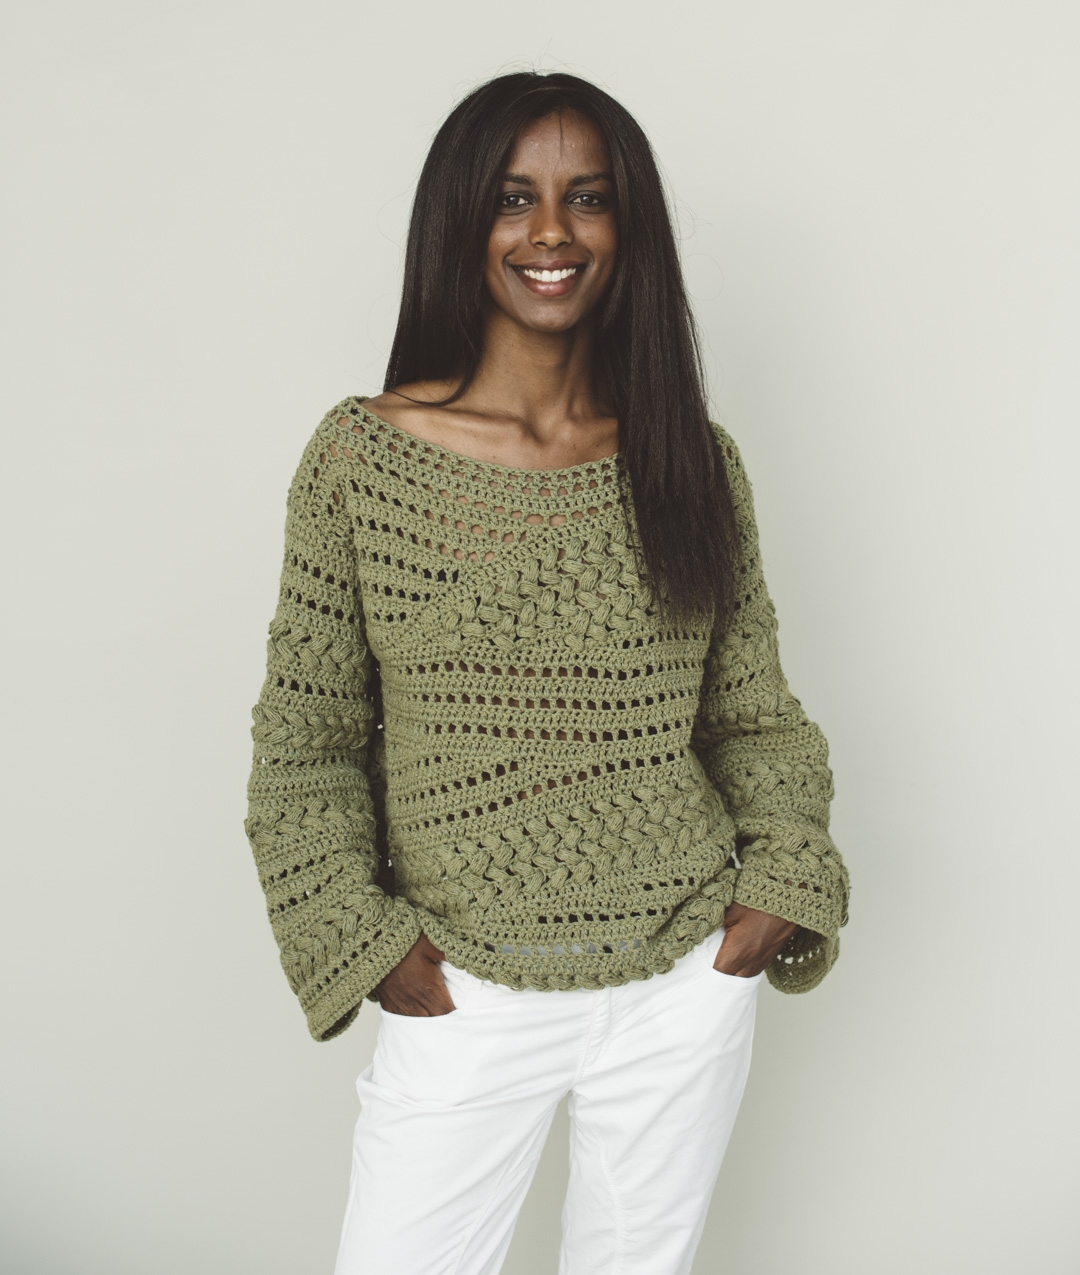 Crochet Kits - Sweaters and Tops - ELISEE PULL - 1